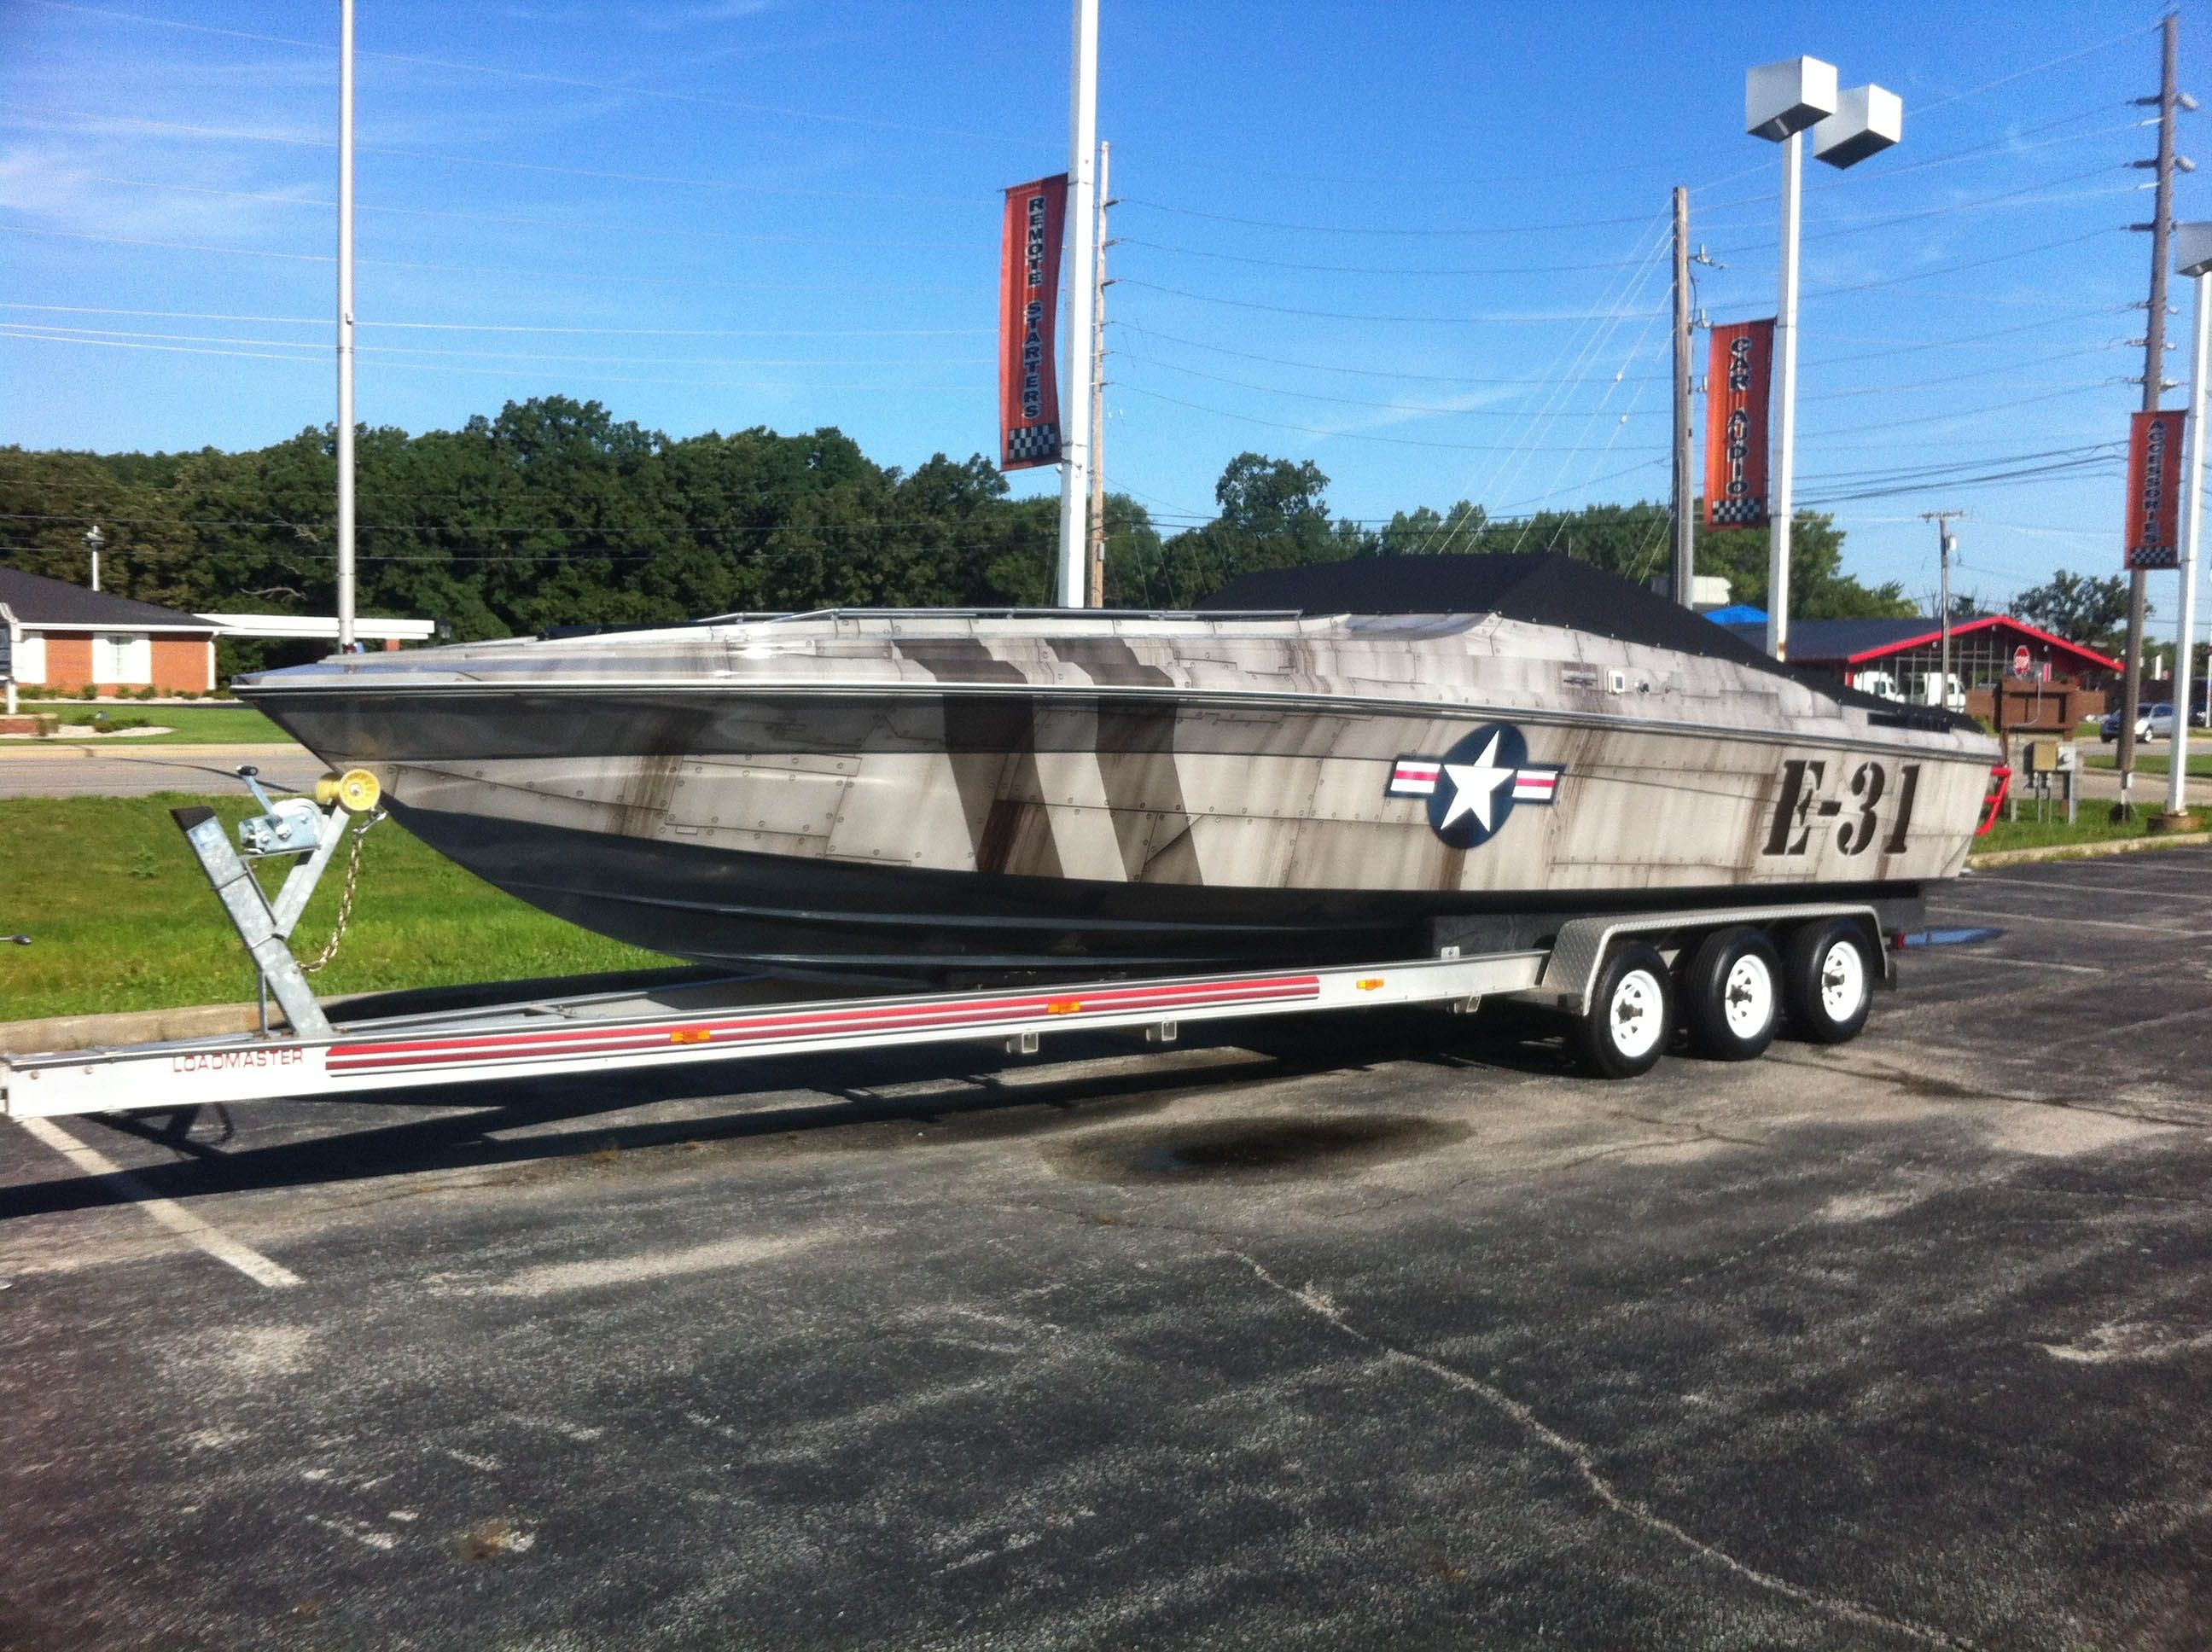 boat wrap graphics - Boat Graphics Designs Ideas